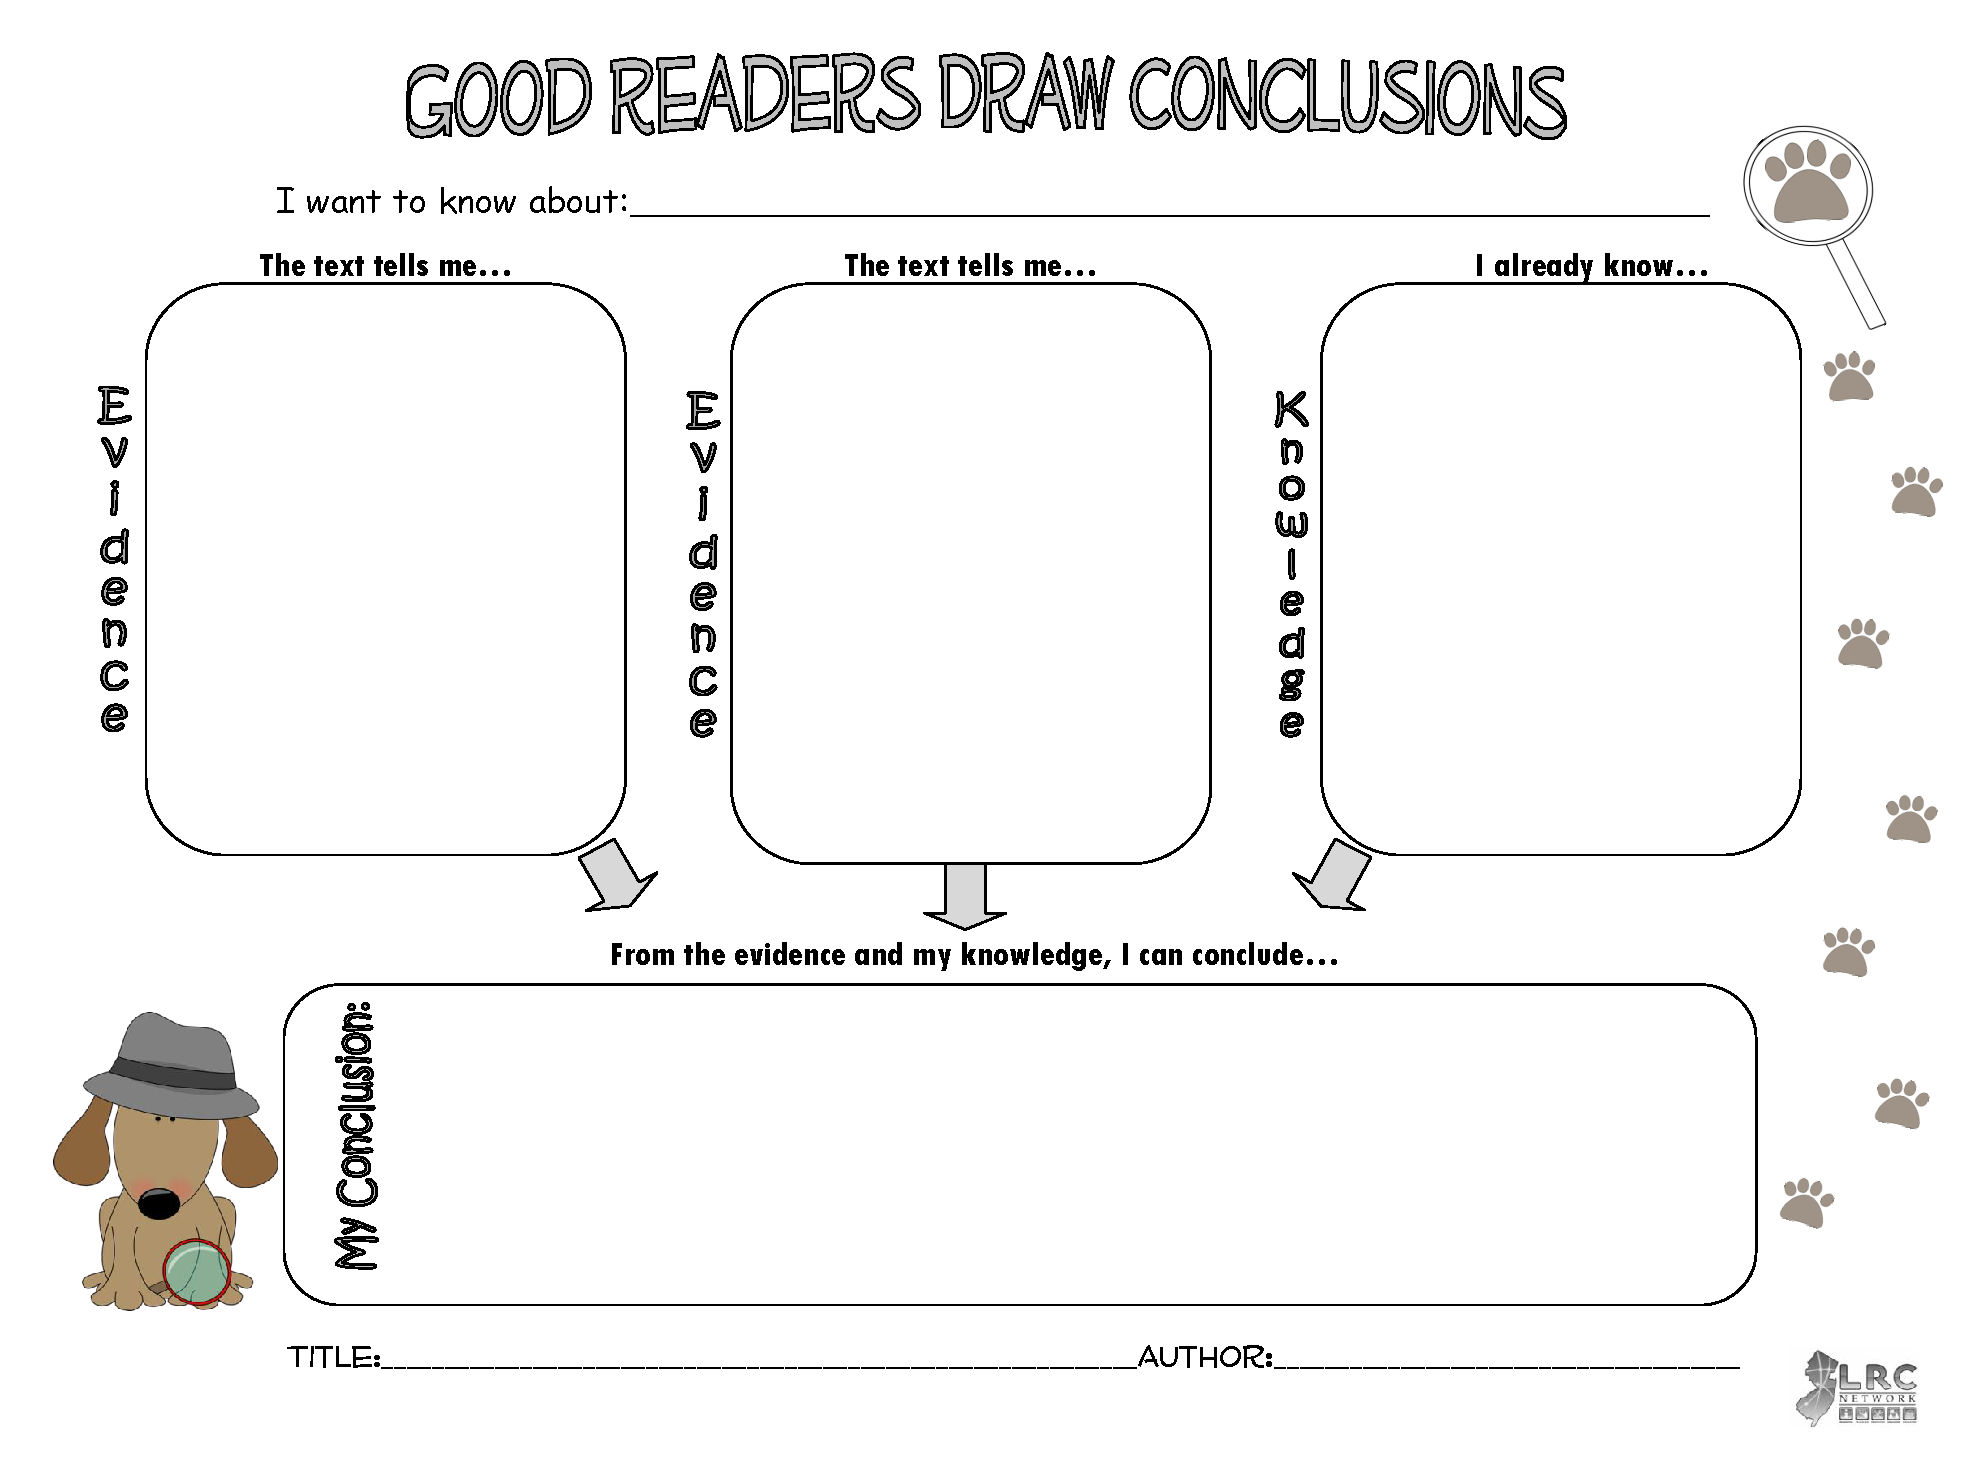 medium resolution of Good Readers Draw Conclusions graphic organizer   Reading comprehension  graphic organizers